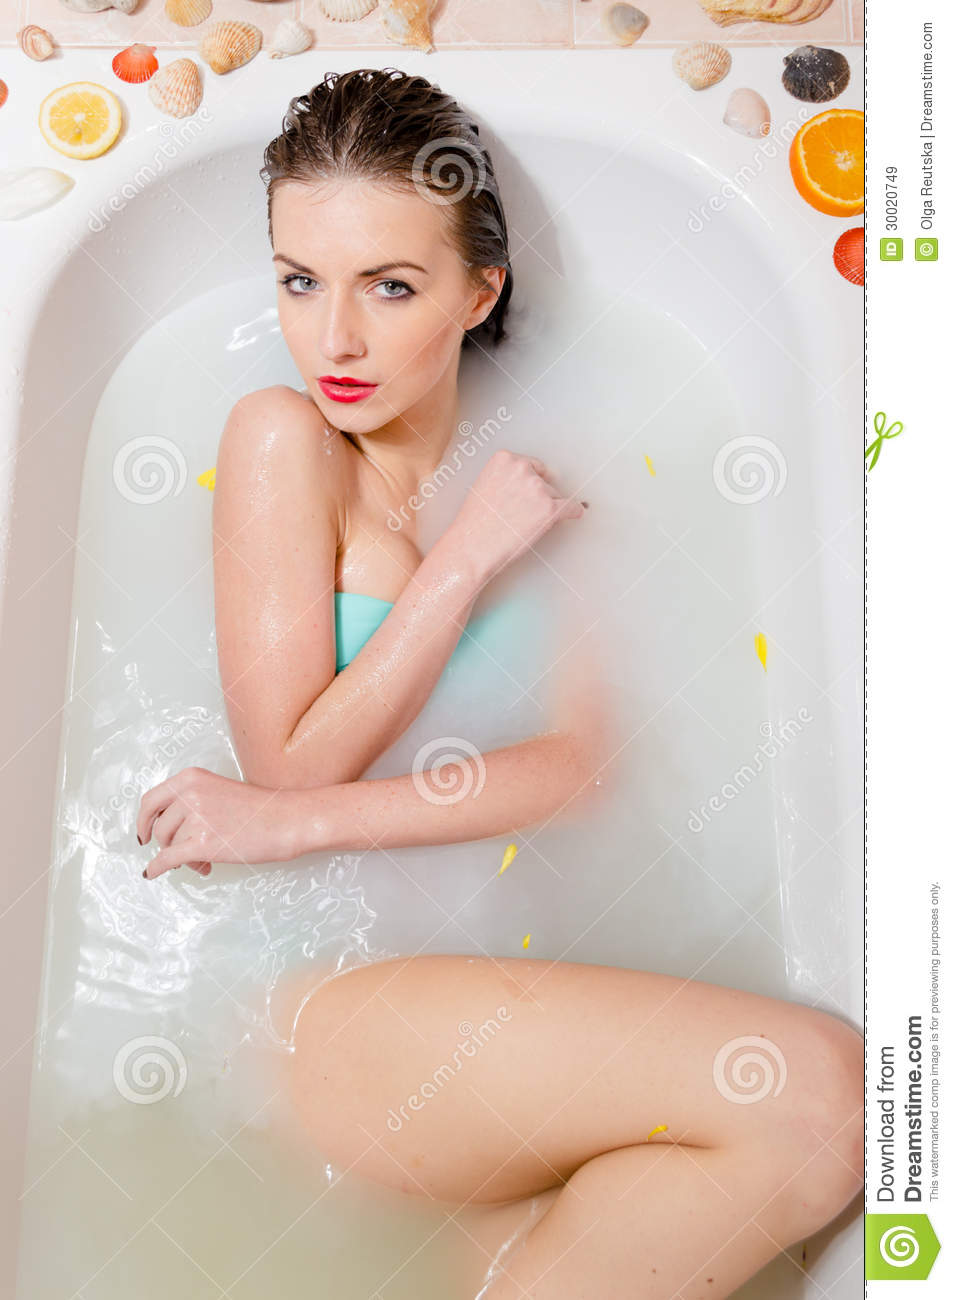 Sexy bath photos